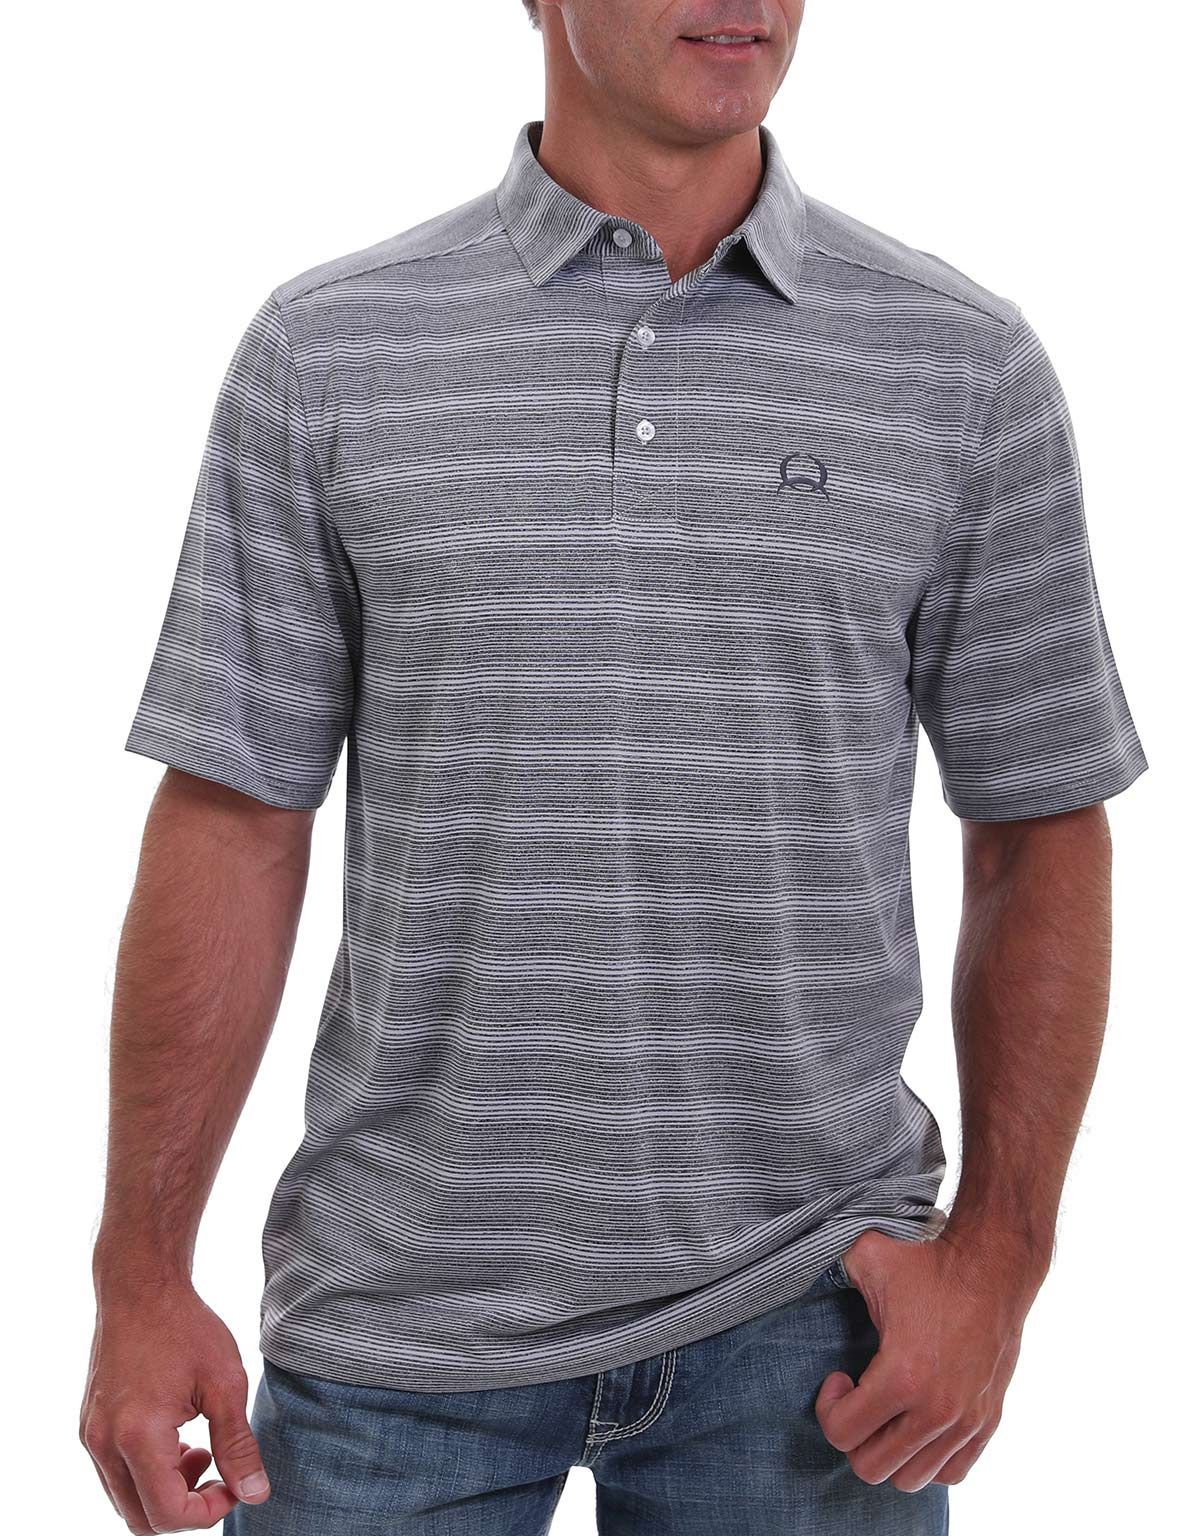 Cinch Men's Short Sleeve Arena Flex Striped Shirt - Gray